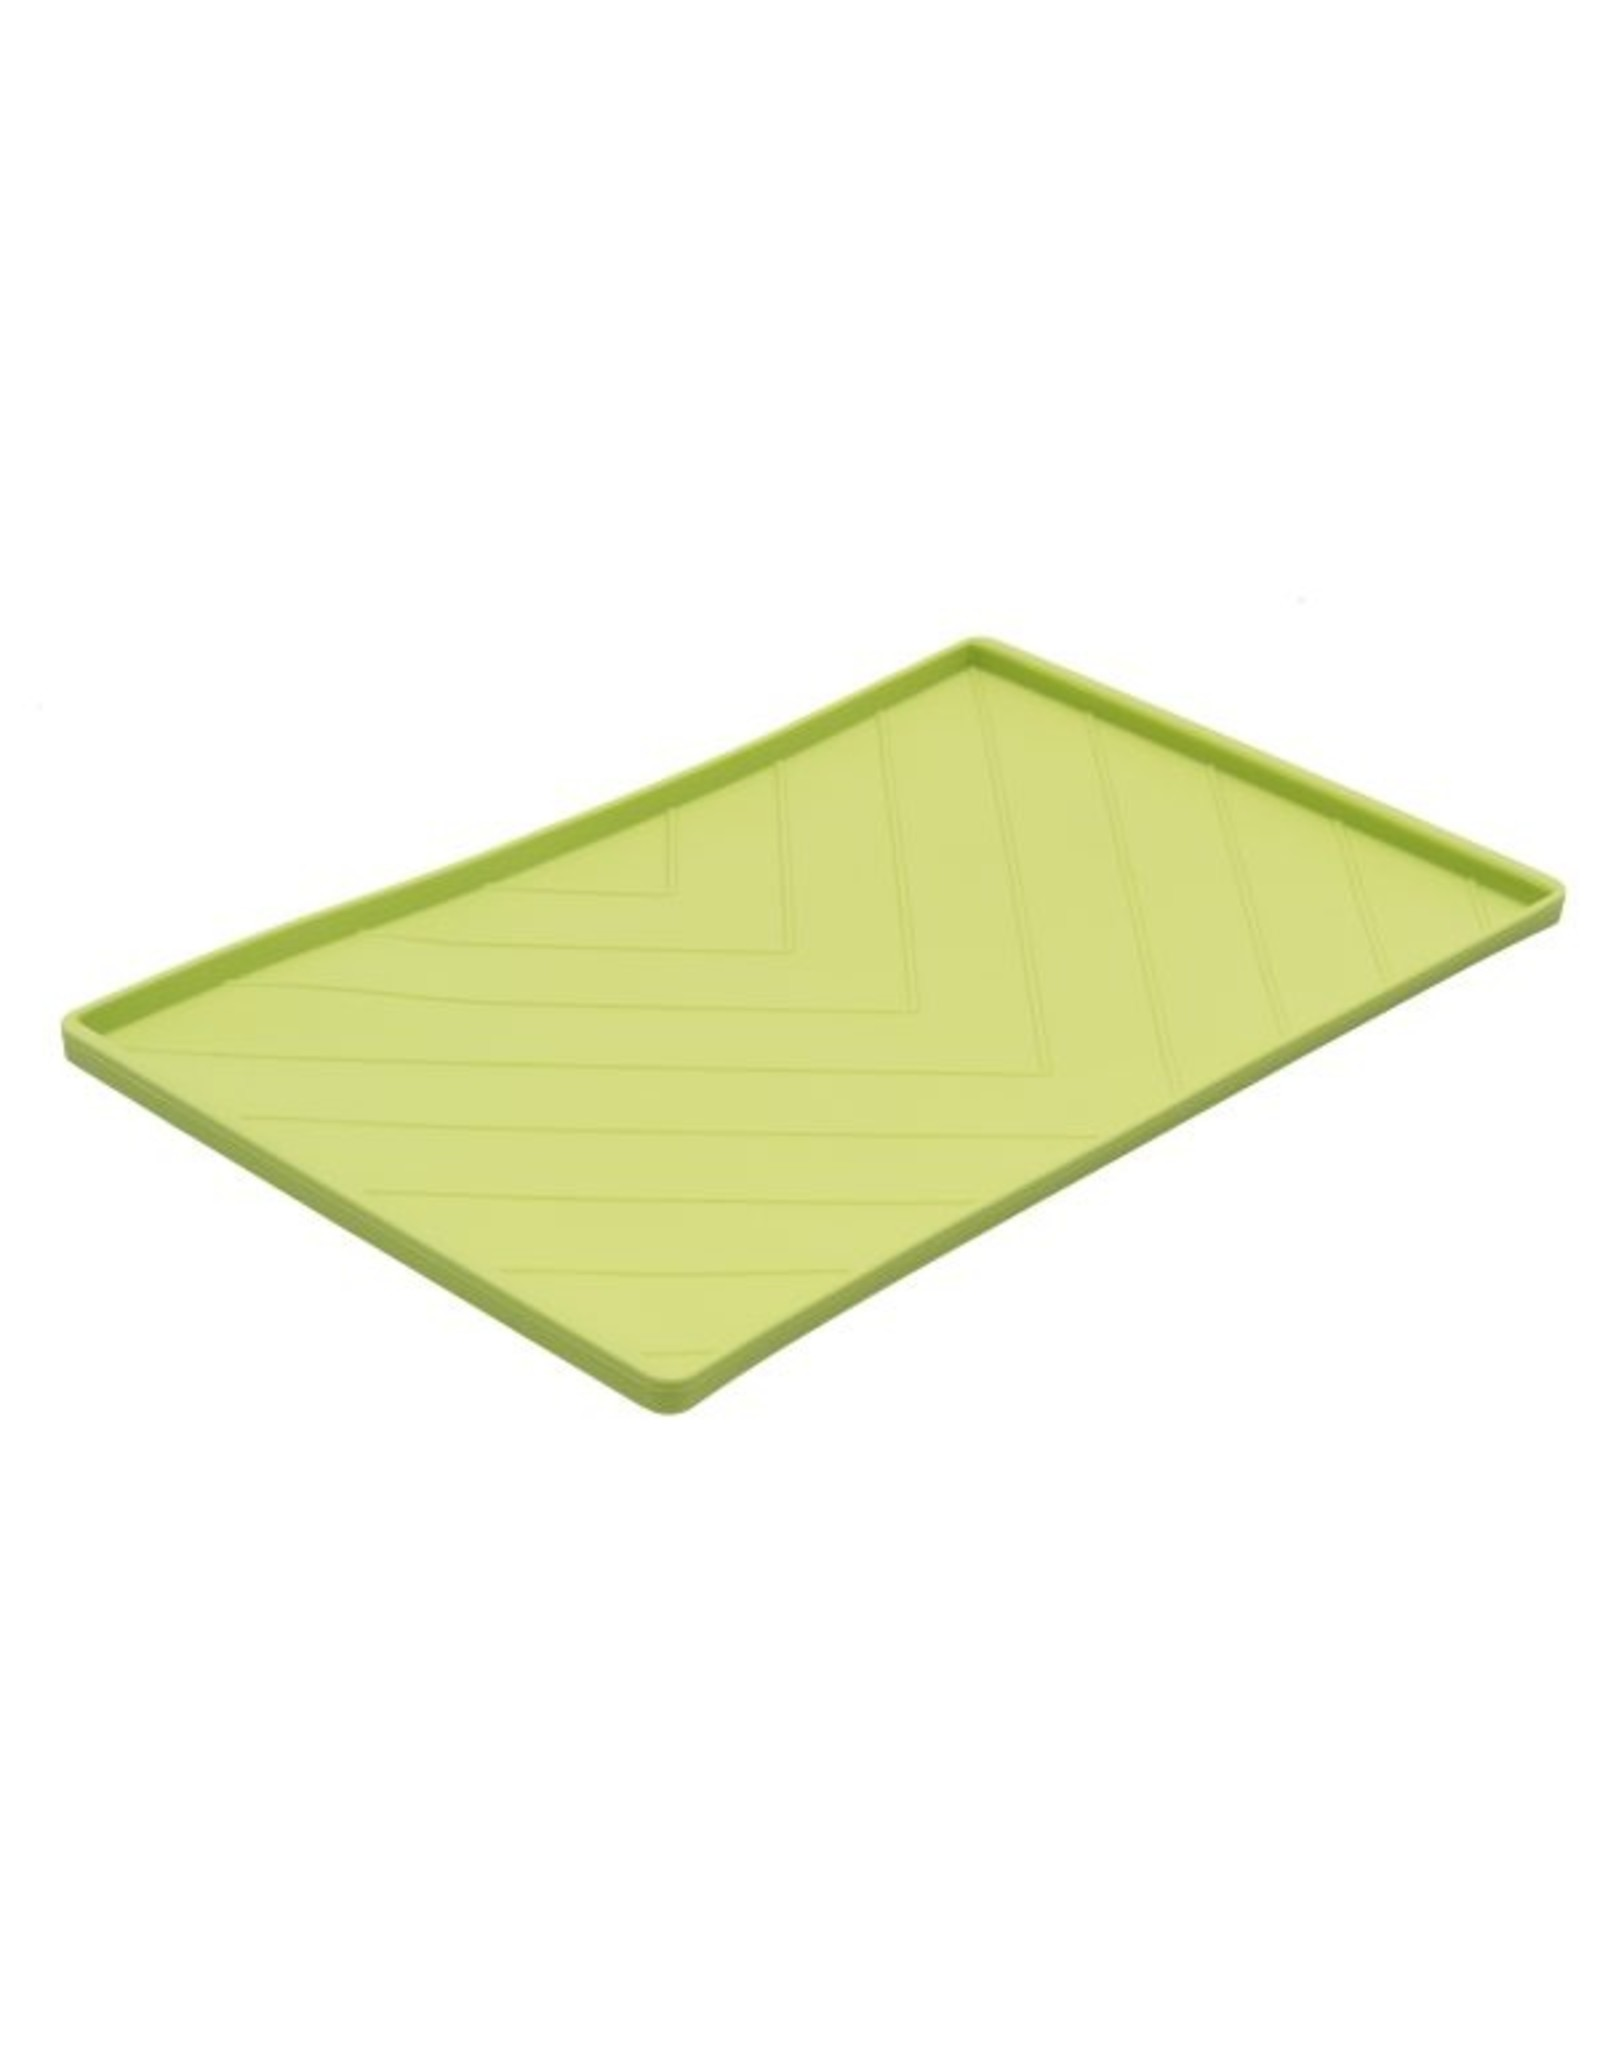 Messy Mutts Messy Mutts Silicone Food Mat Green